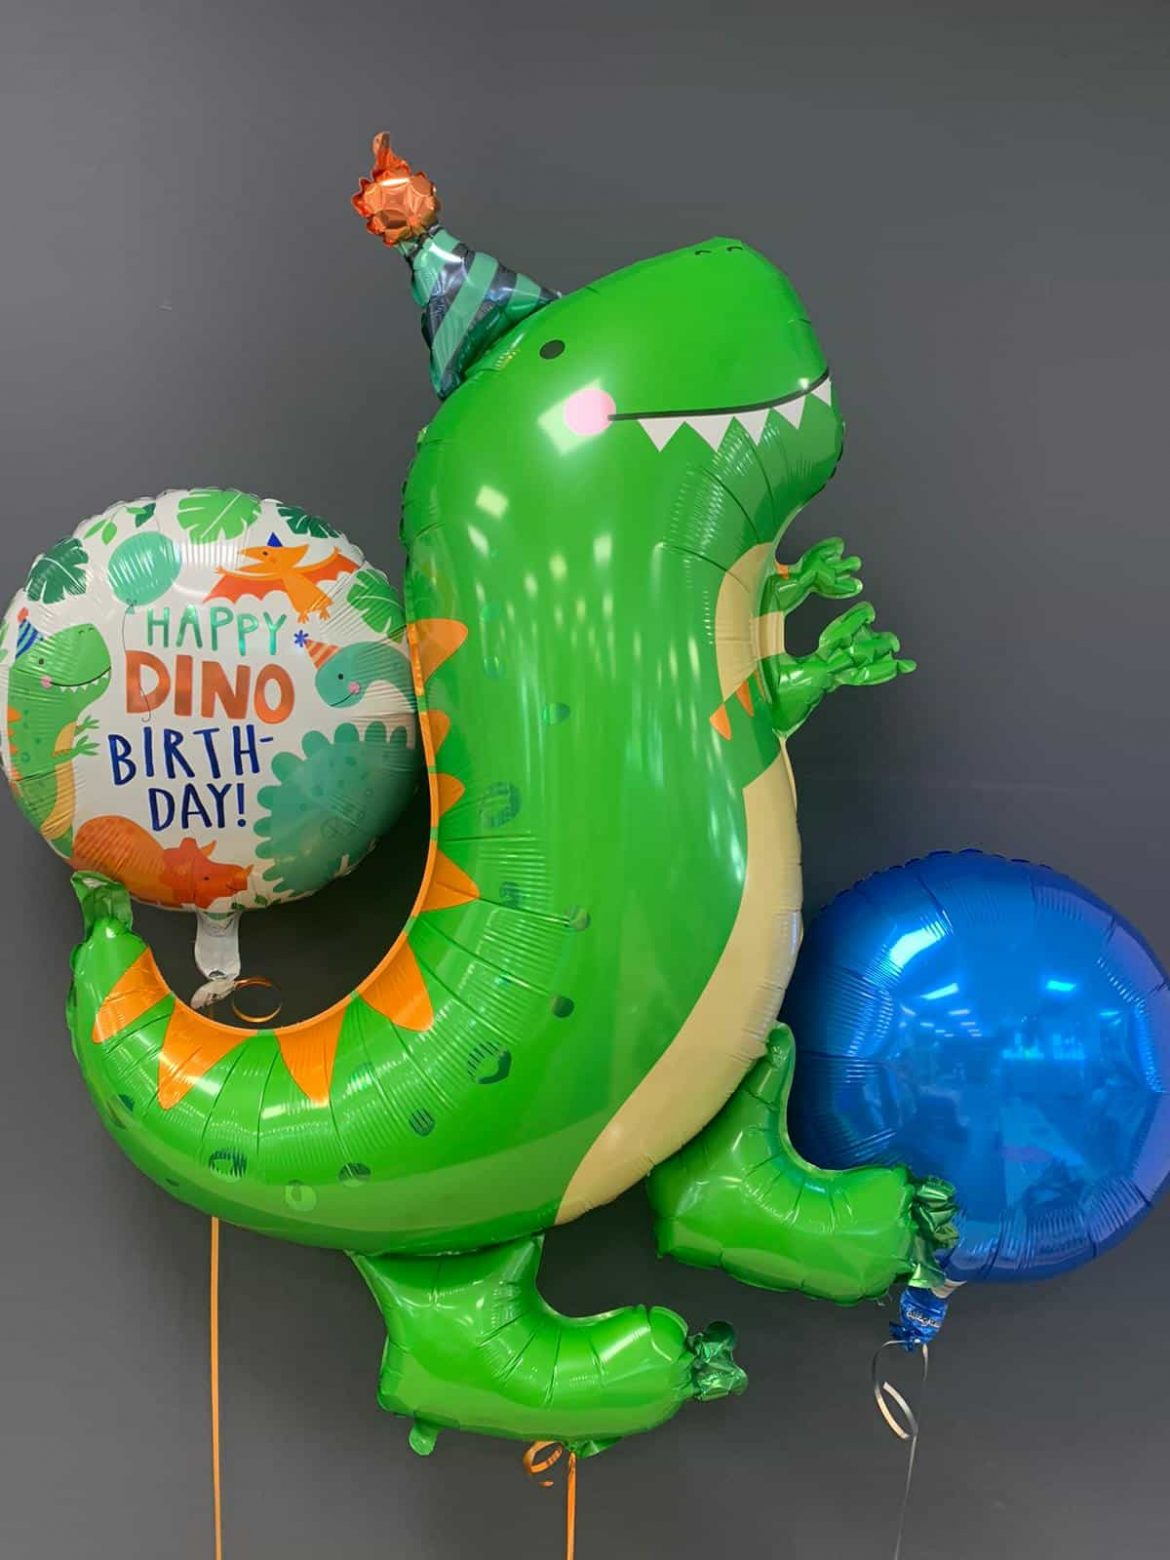 Dinosaurier € 8,90<br />Happy Birthday € 5,50<br />Dekoballon € 4,50 1